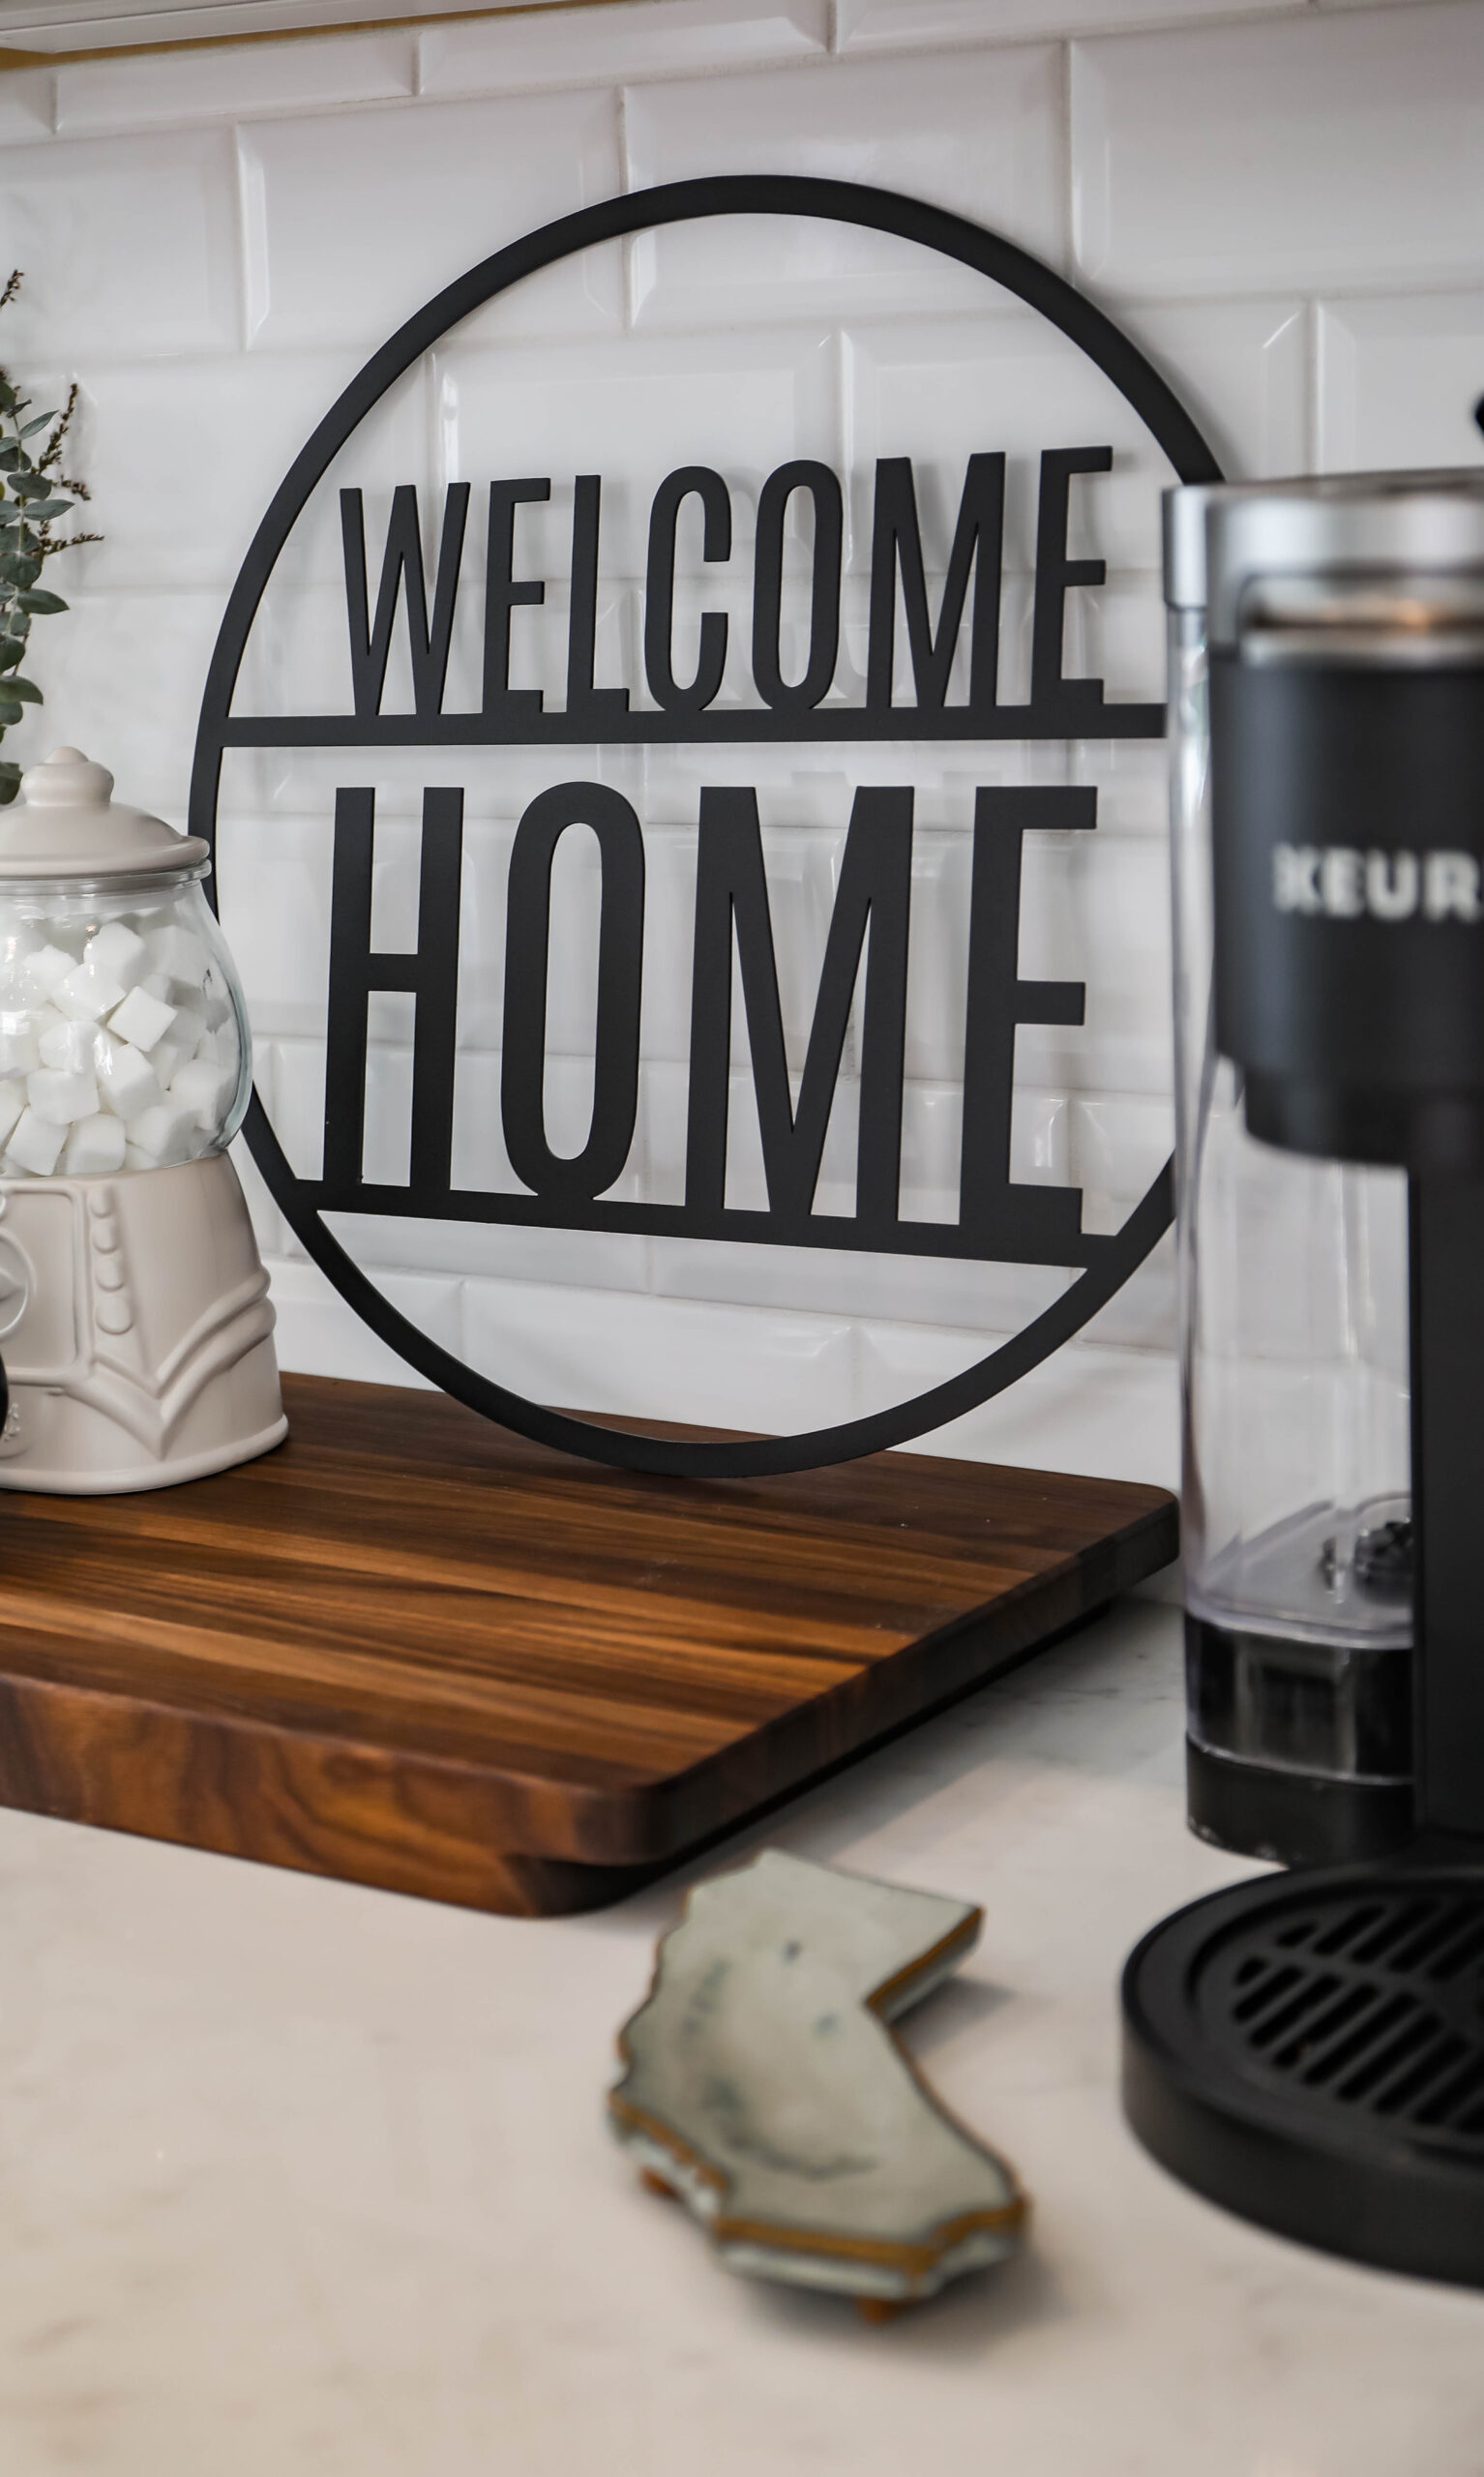 Want to create a simple home coffee station? This is our diy coffee station made with mostly items we already had at home!